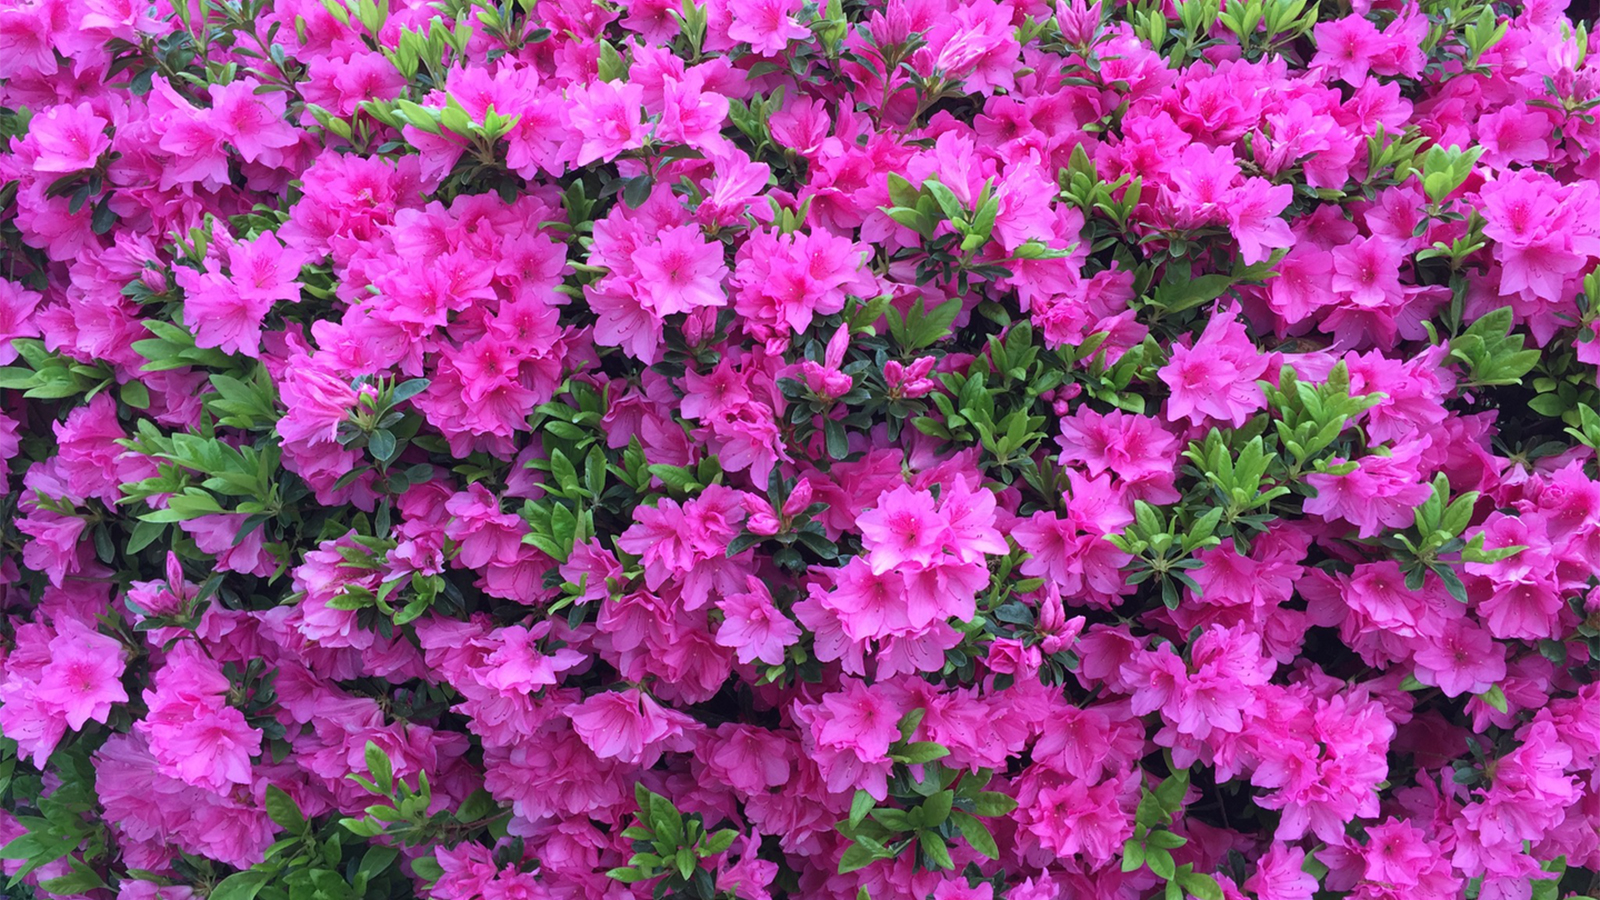 How Azaleas Became the Signature Flowers of the South